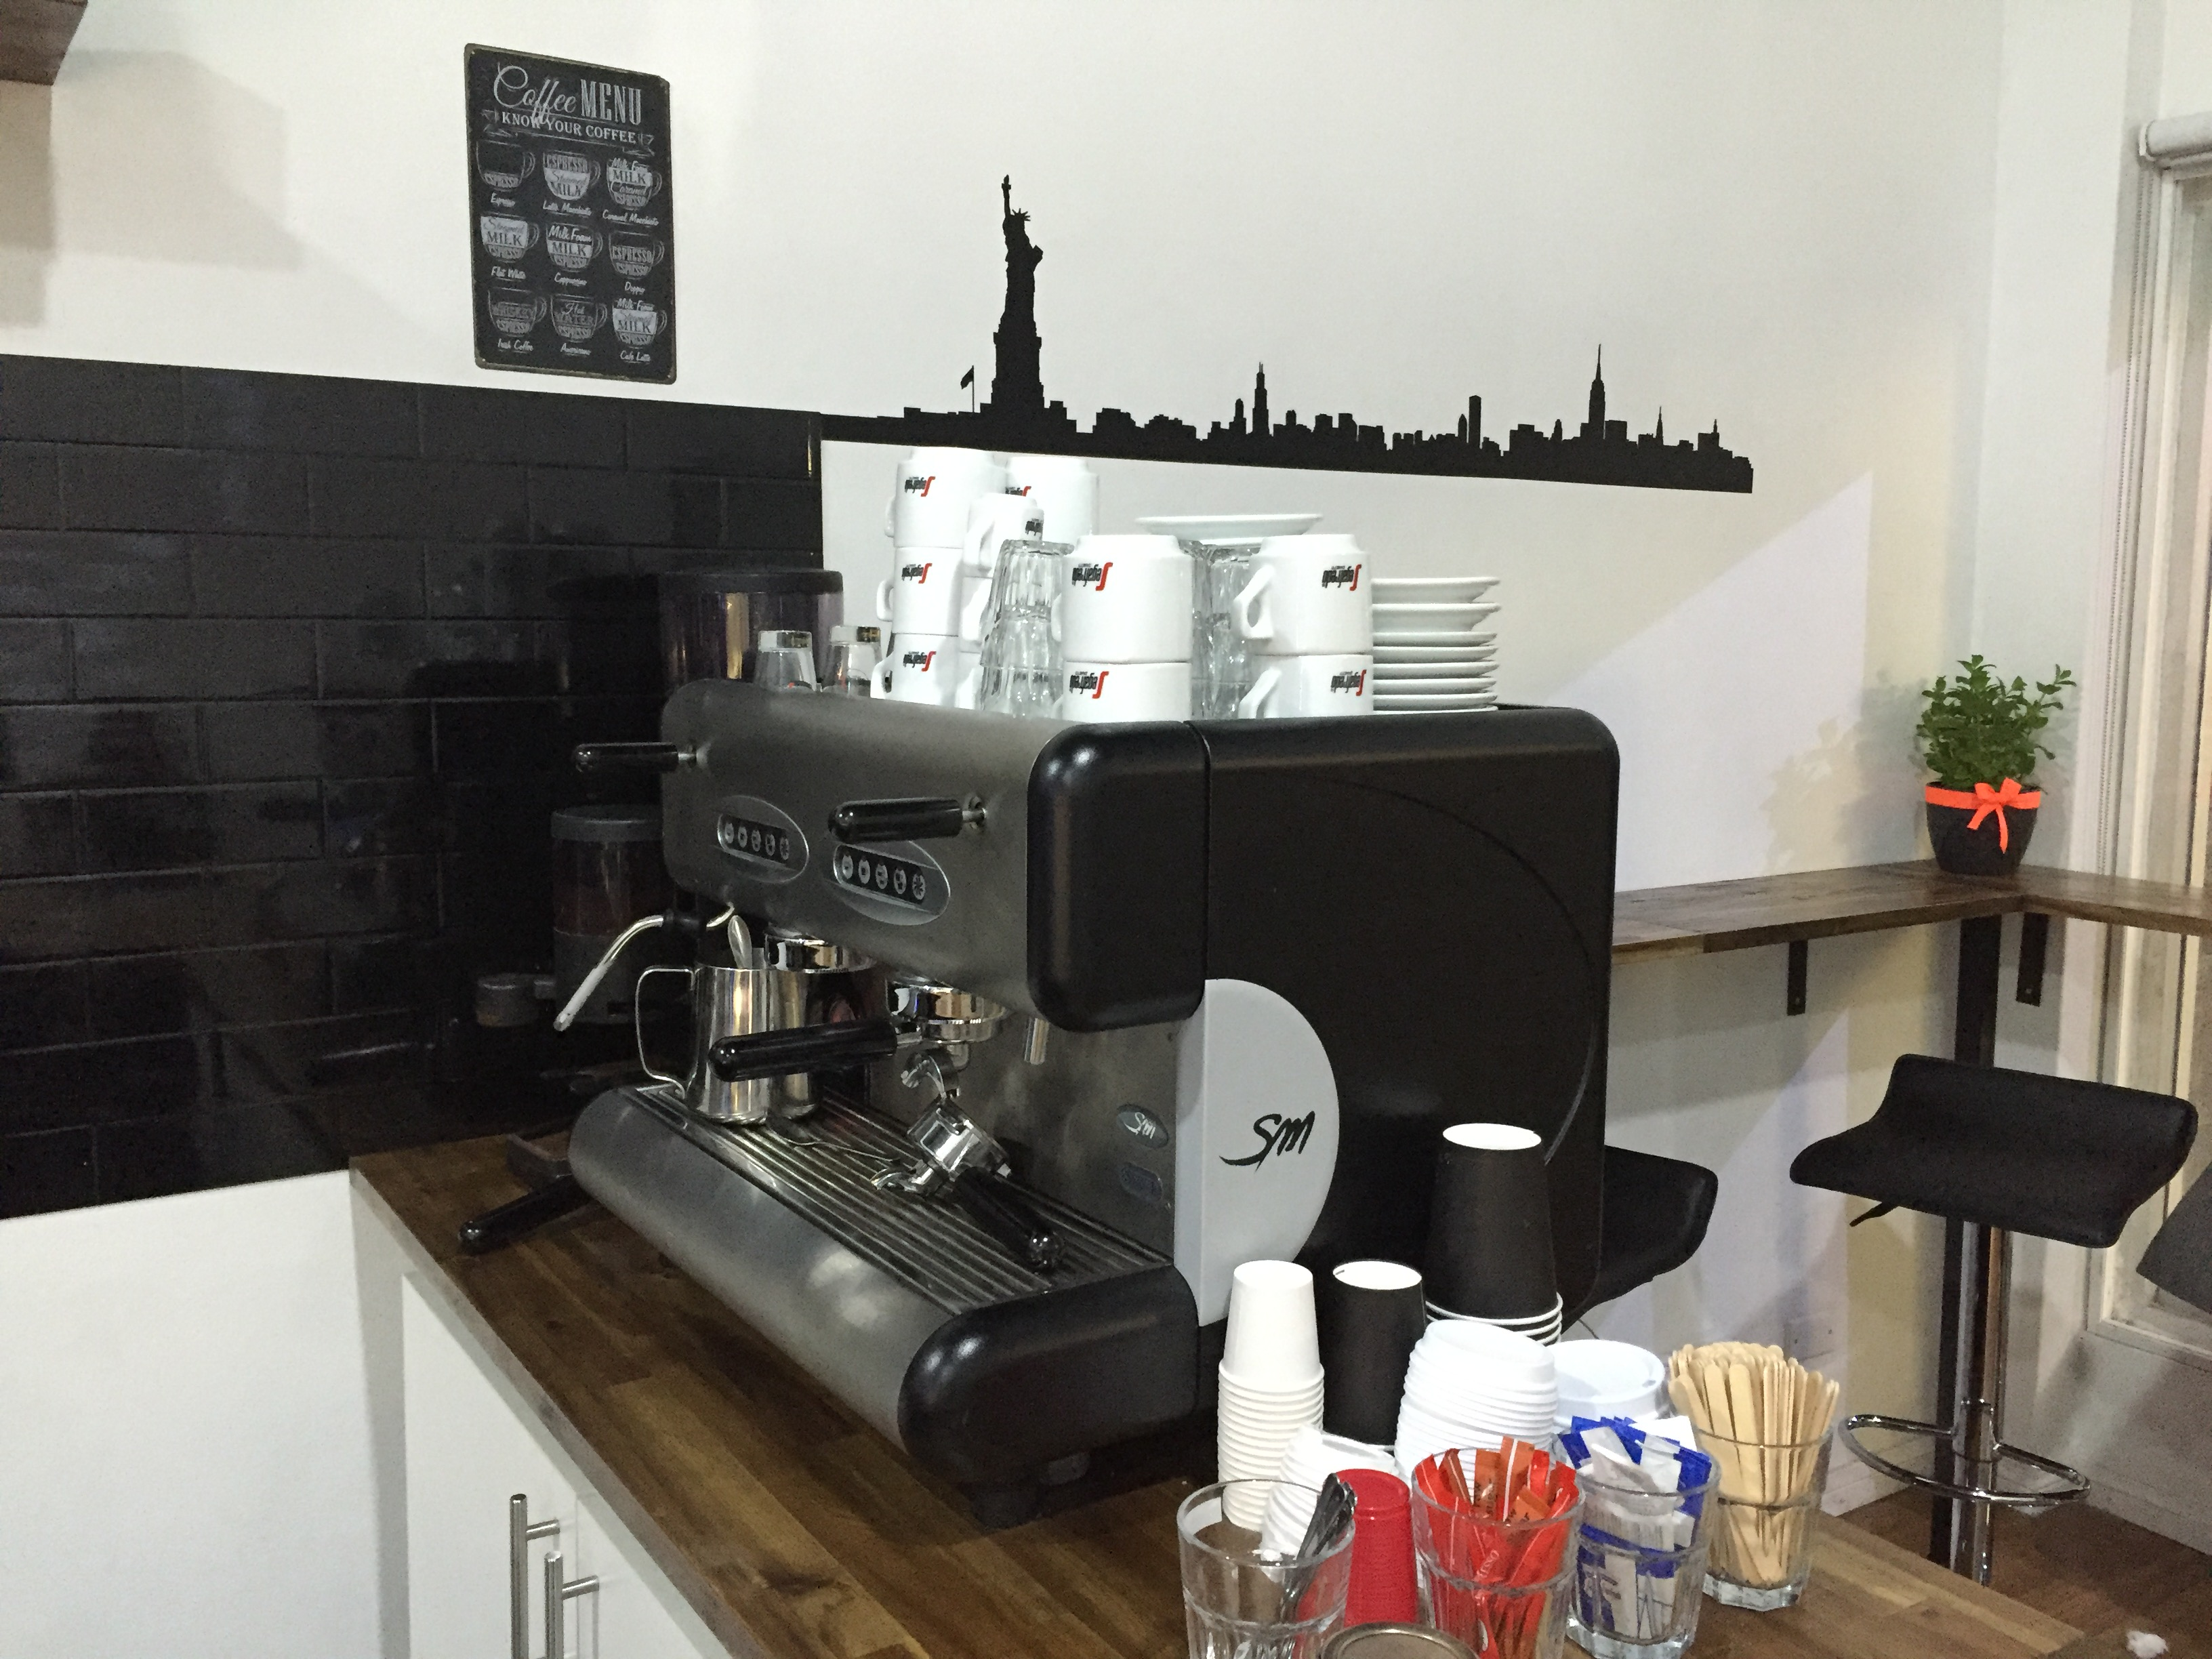 Segafredo coffee machine